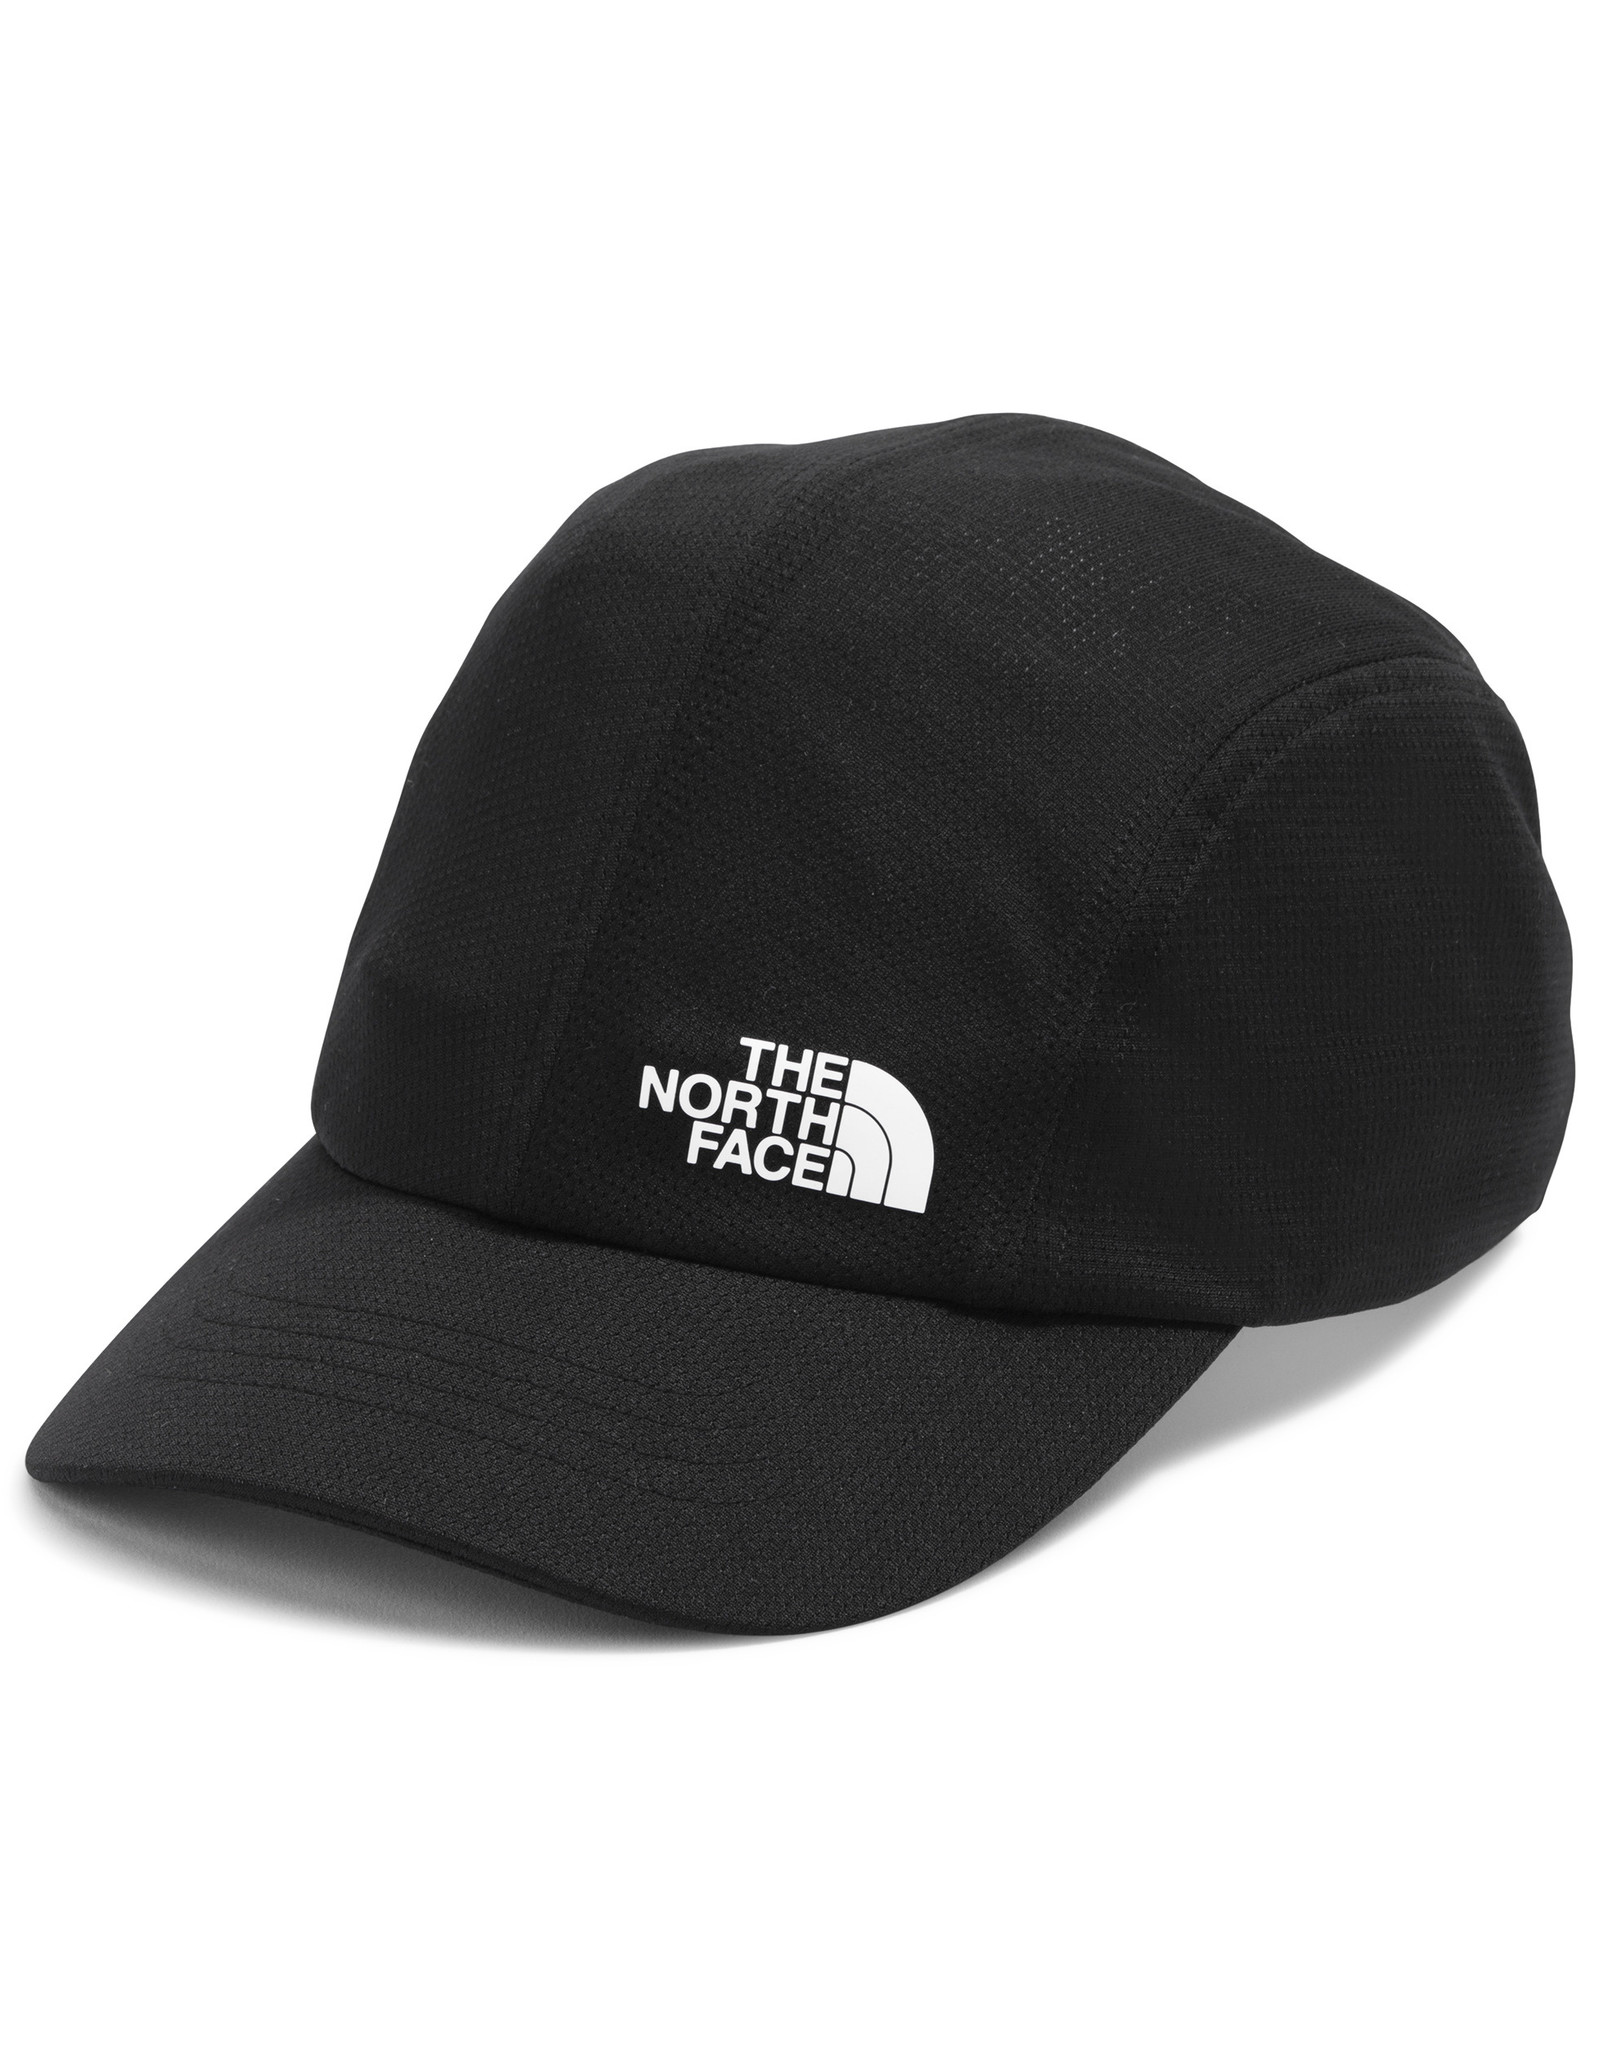 The North Face The North Face Mesh 4-Panel Cap - S2020